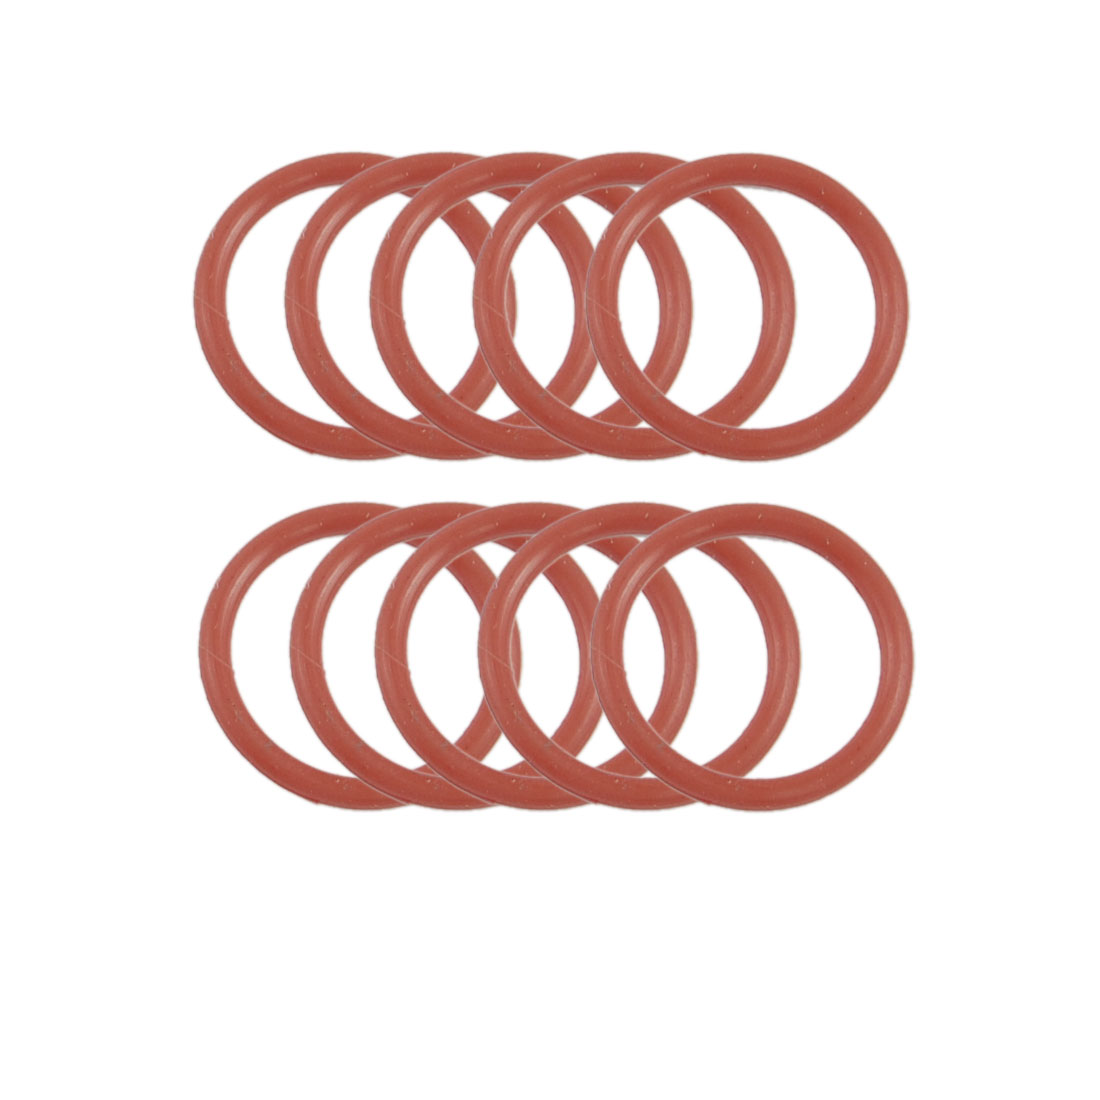 19mm OD 2mm Thickness Dark Red Silicone O Ring Oil Seal Gasket 10 Pcs